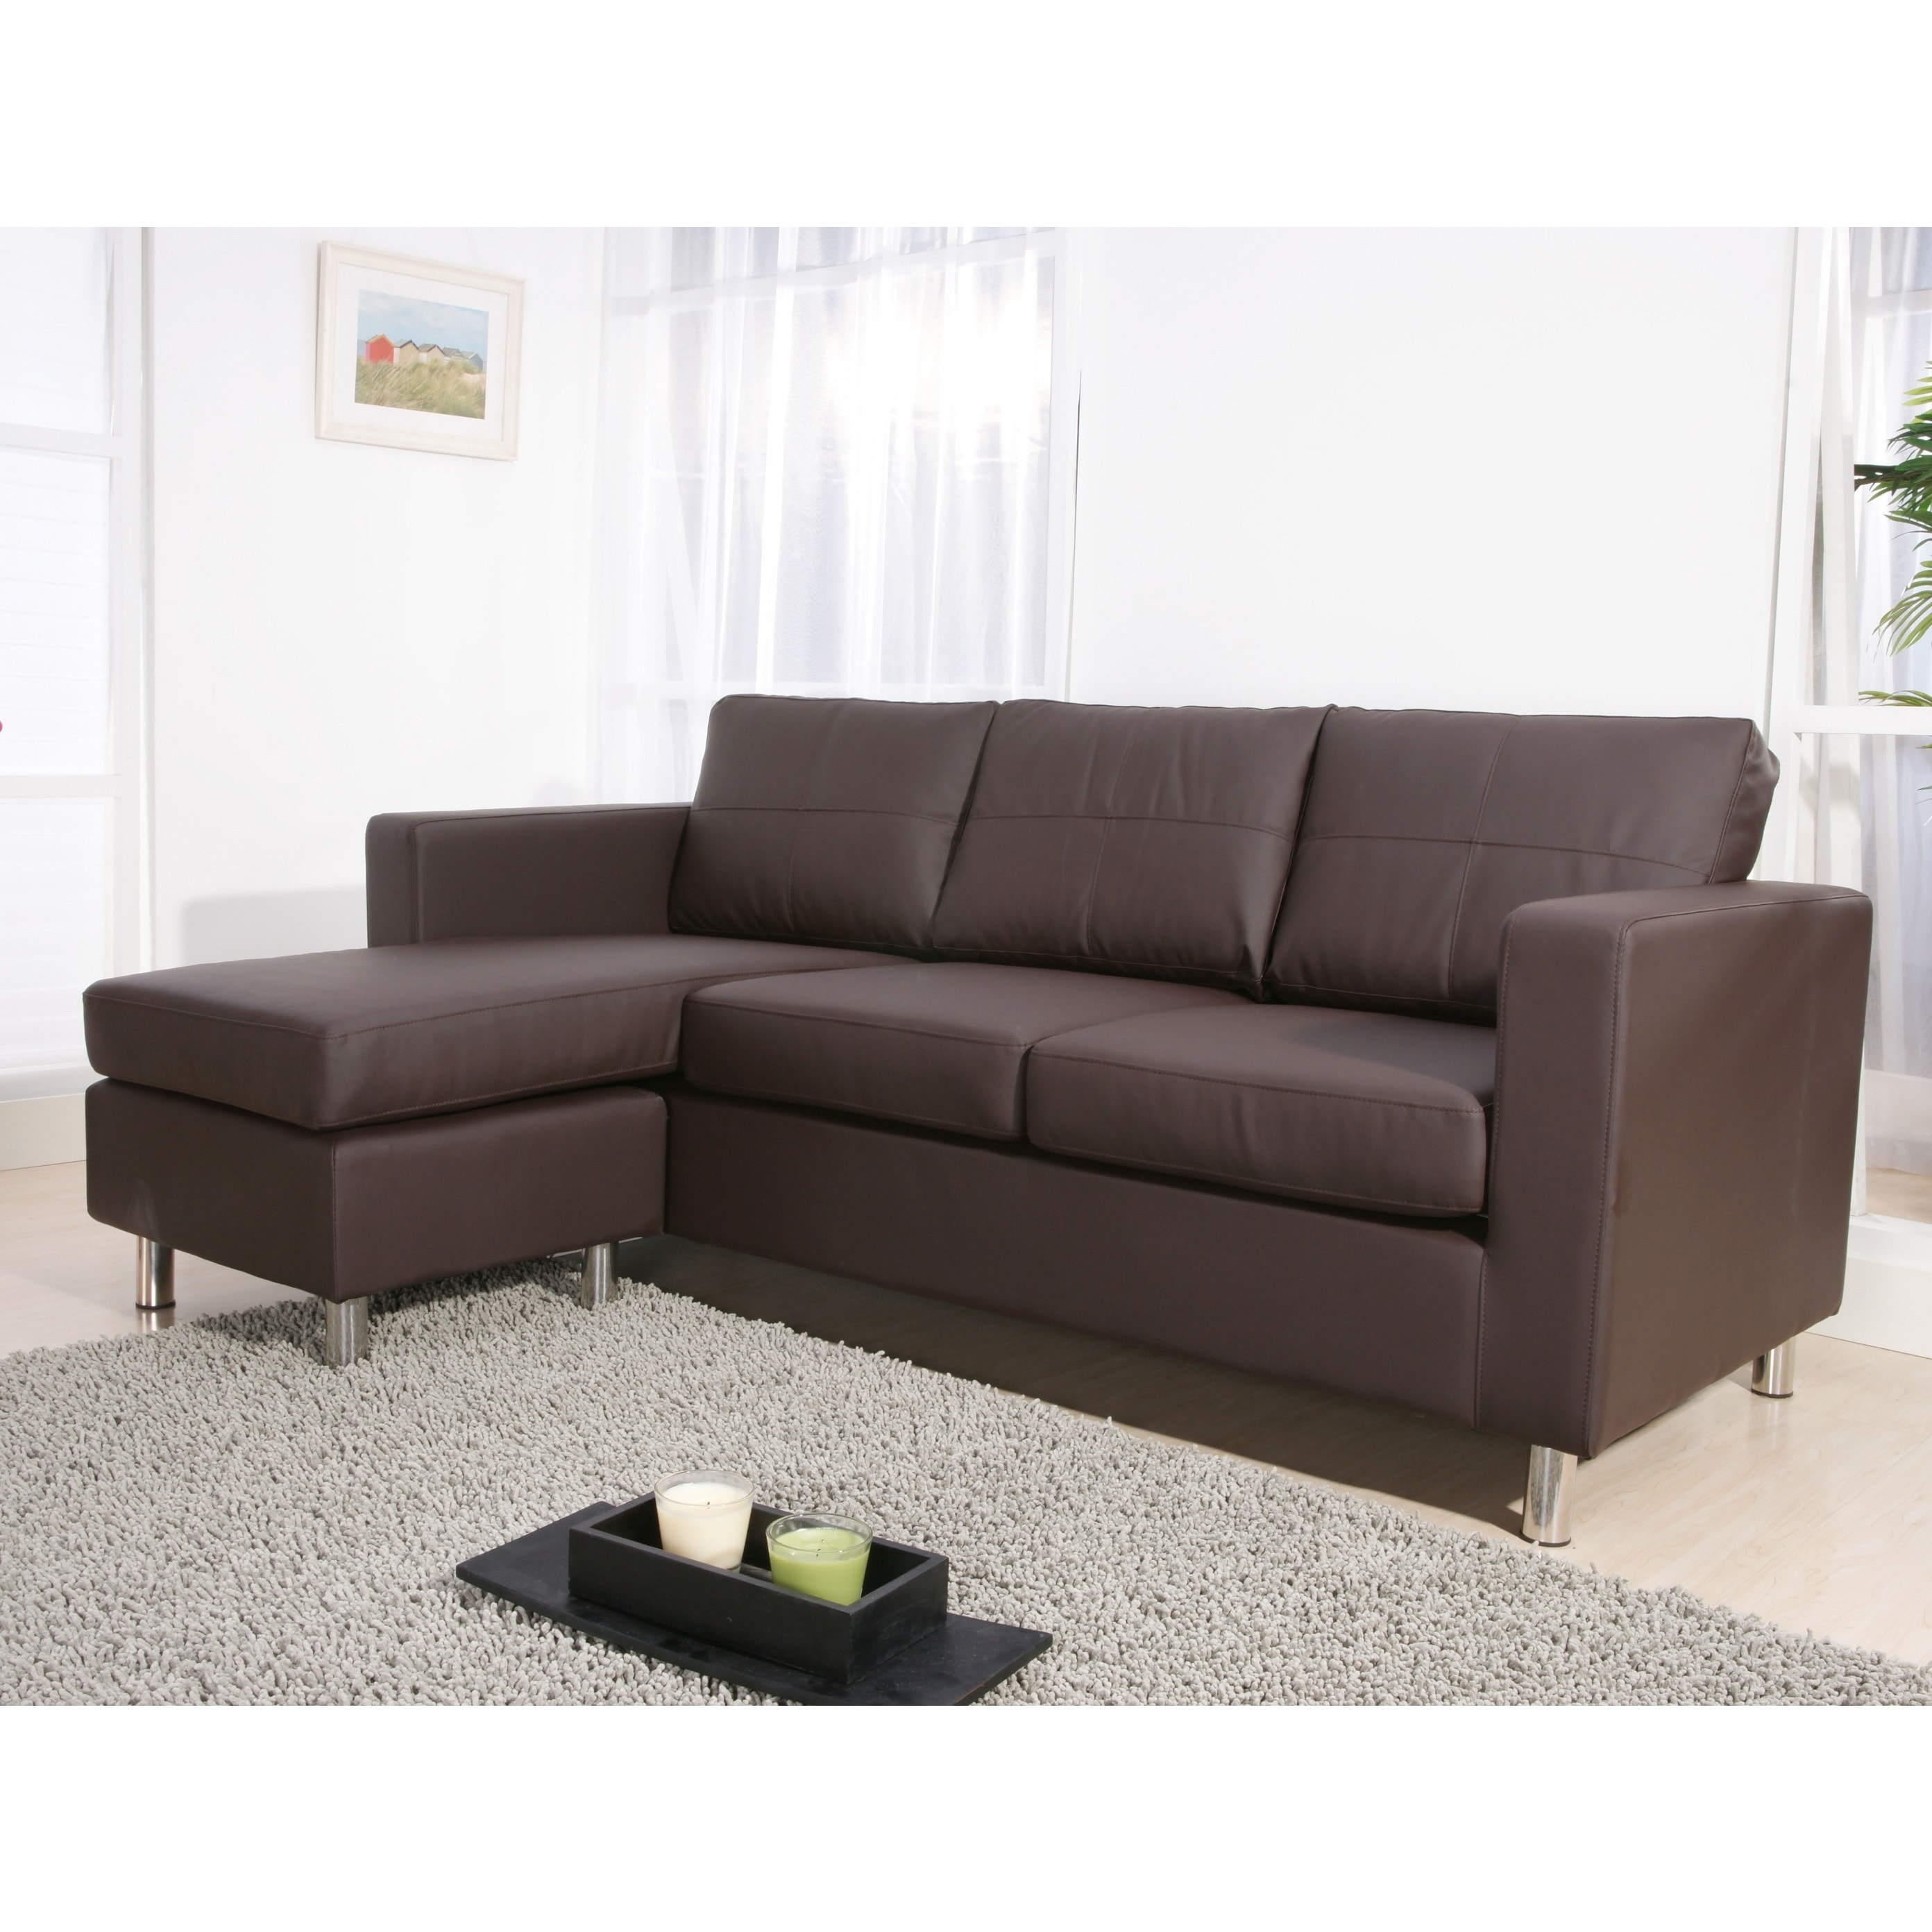 Groovy Caius Faux Leather Versatile Sofa Set Pdpeps Interior Chair Design Pdpepsorg